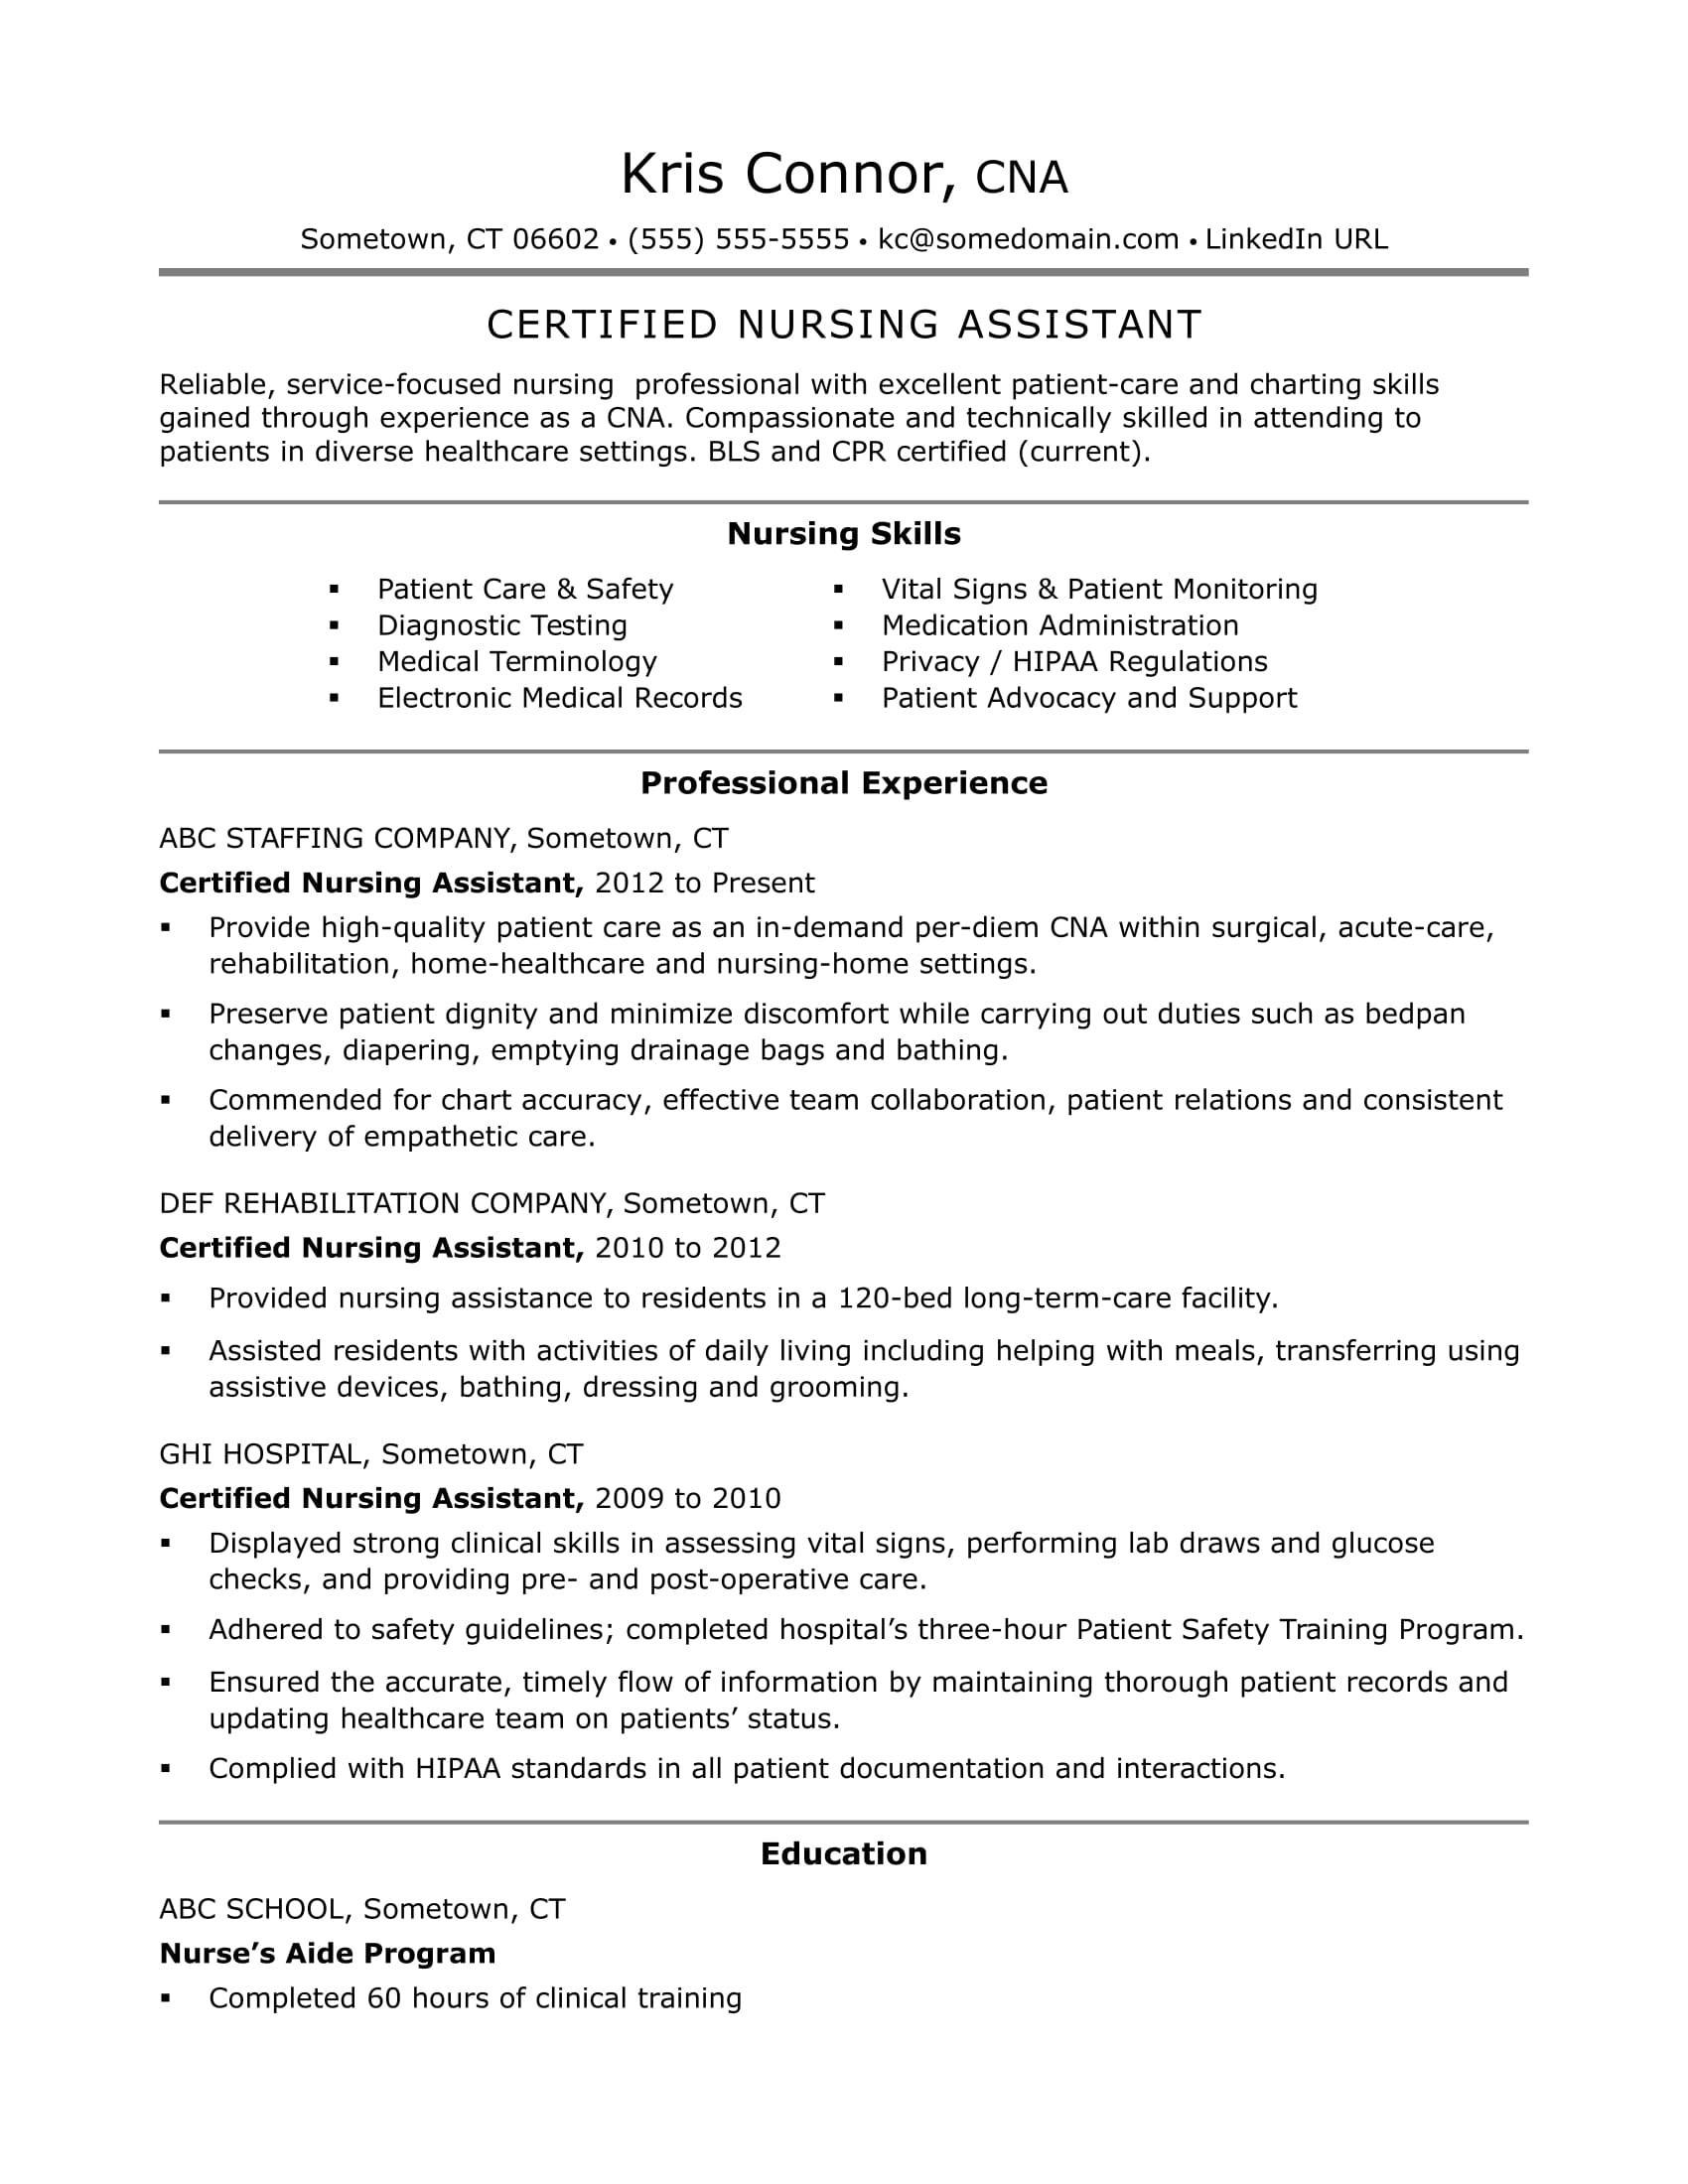 cna resume examples skills for cnas monster nursing assistant certified reddit free Resume Nursing Assistant Resume Skills